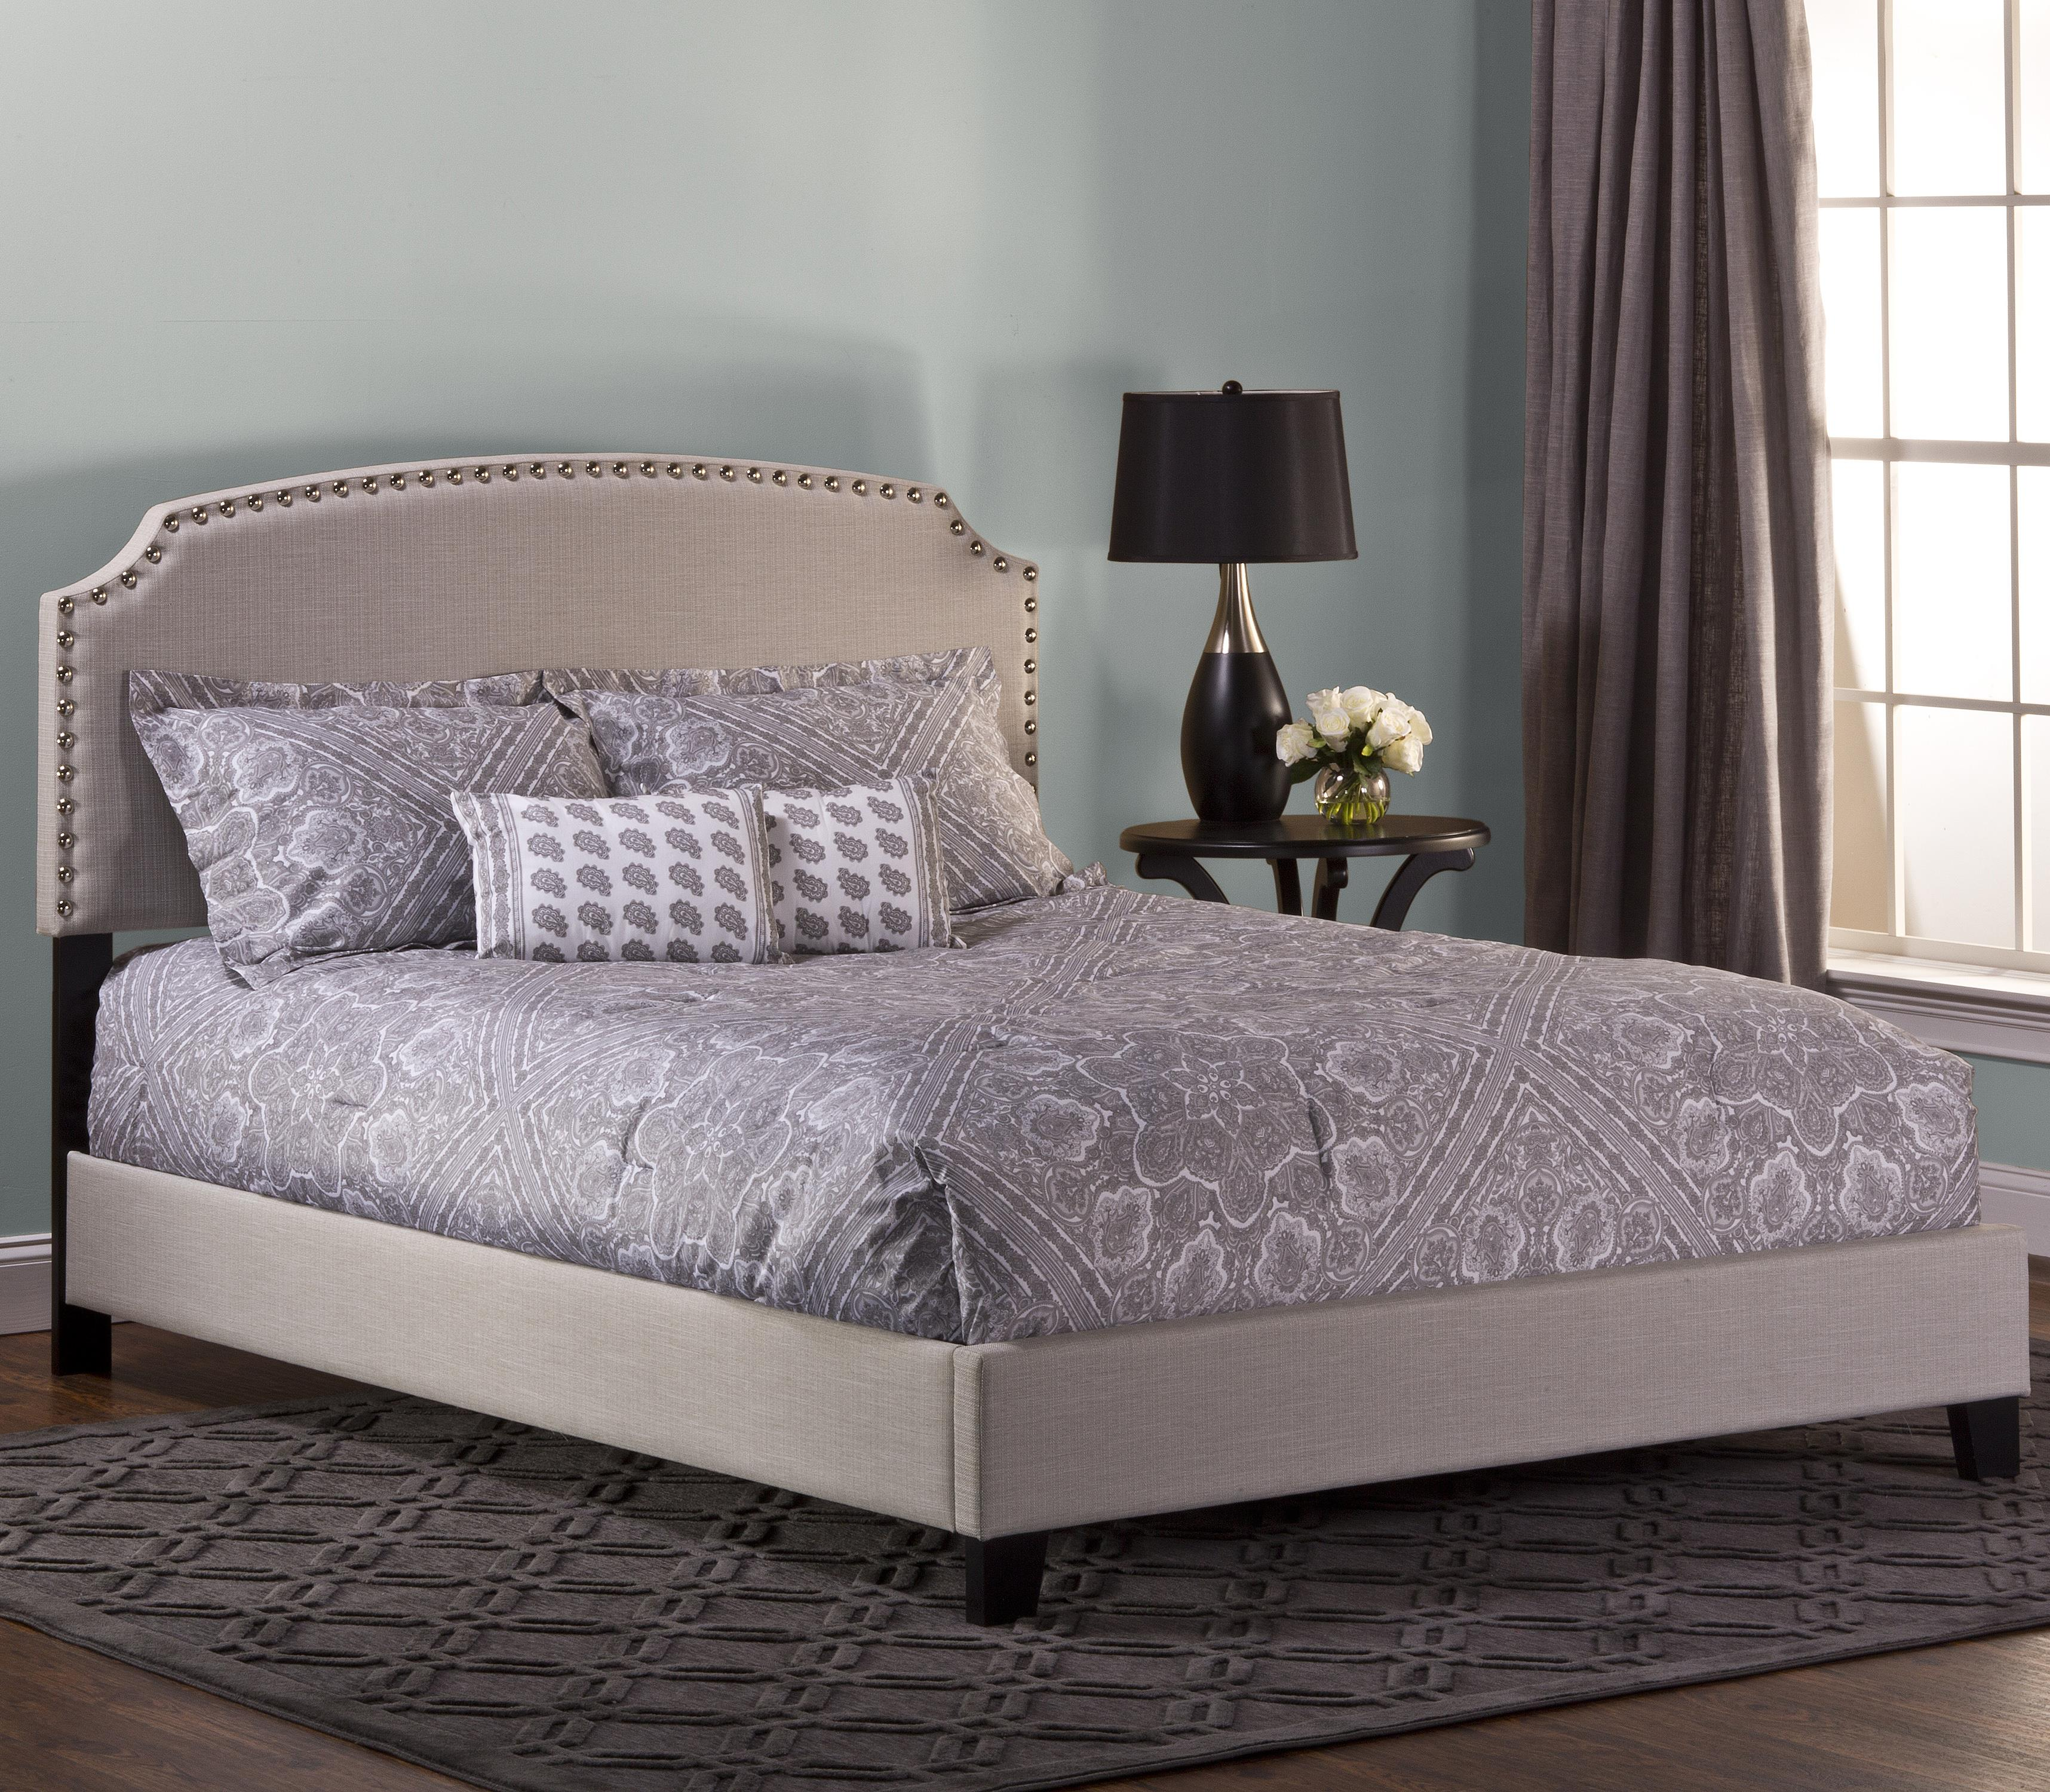 Upholstered Beds Queen Lani Upholstered Bed by Hillsdale at Steger's Furniture